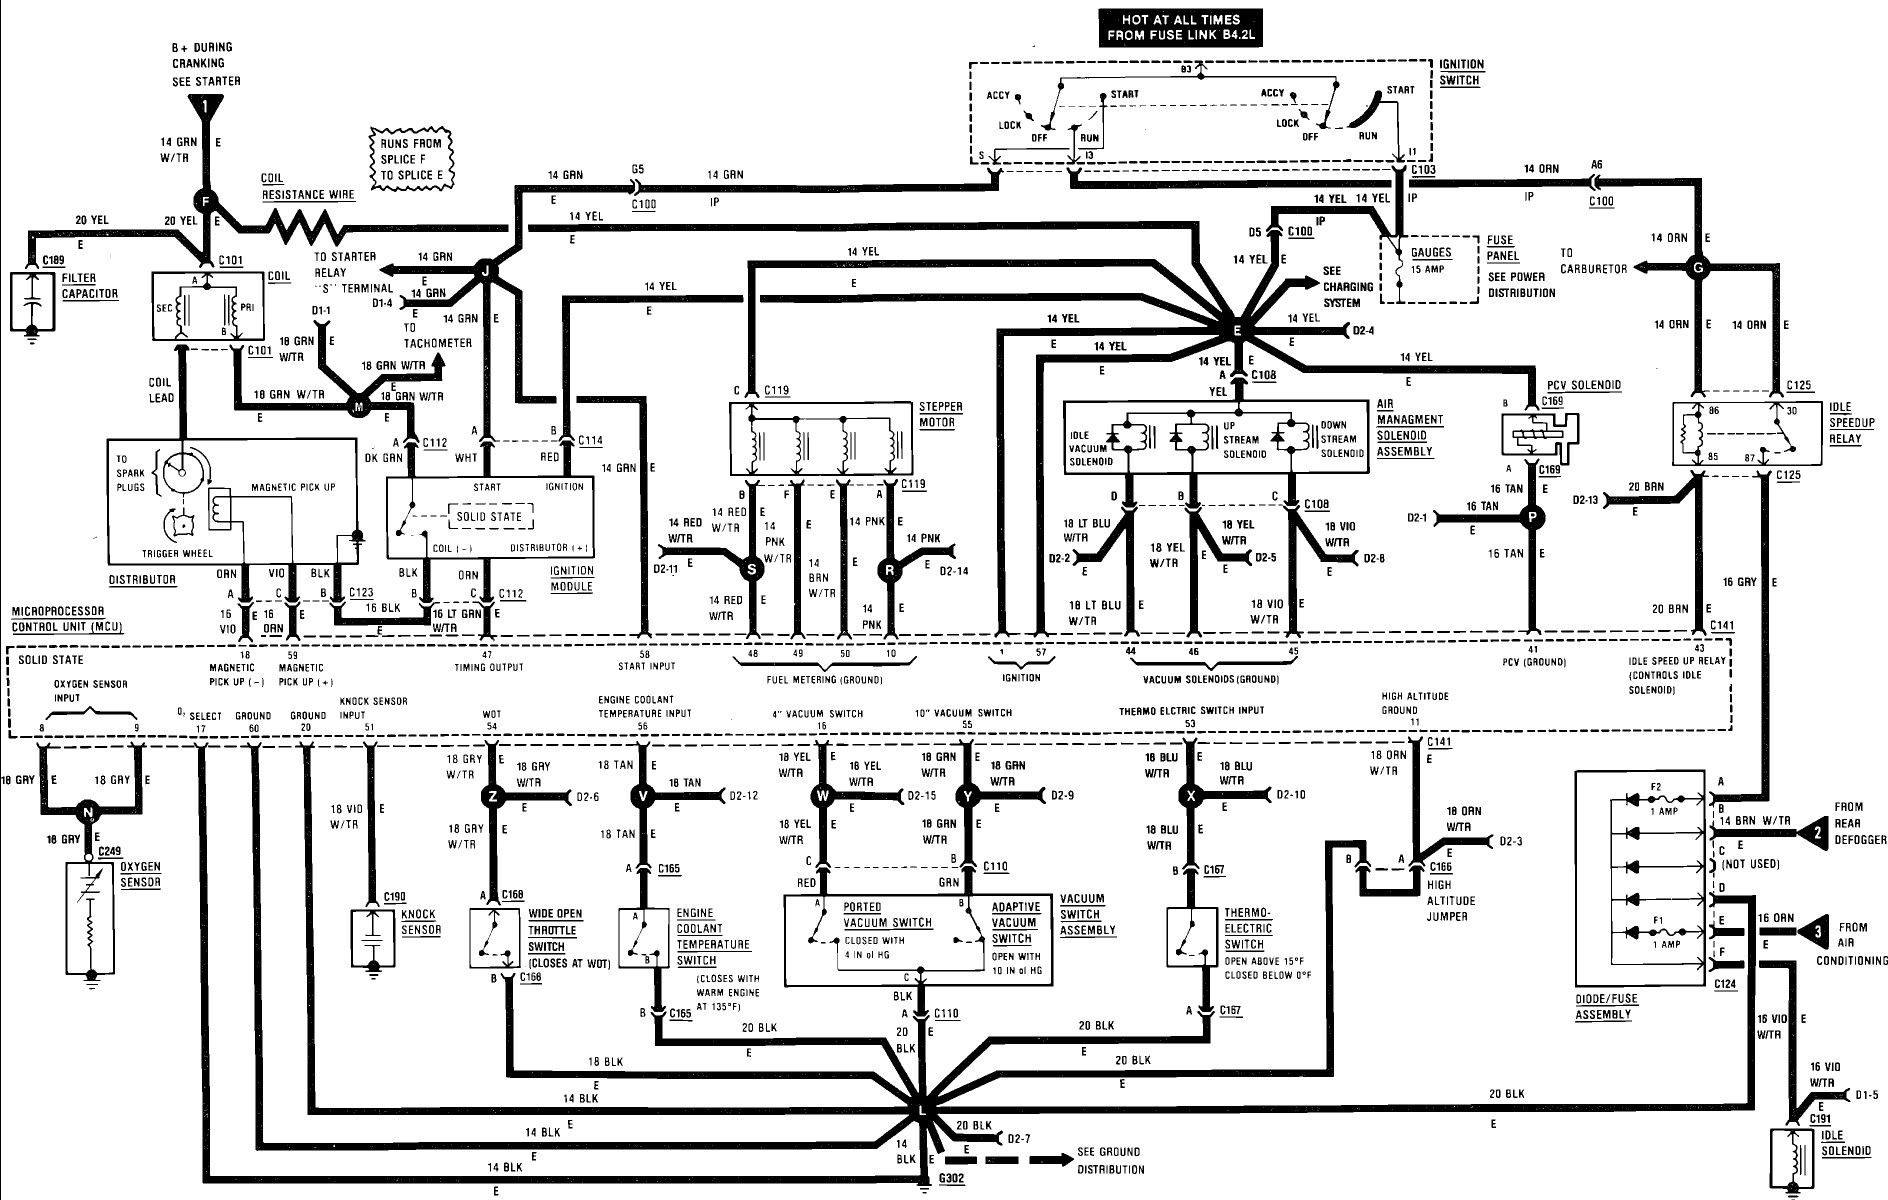 Unique Wiring Diagram For A 2004 Jeep Grand Cherokee Jeep Wrangler 2004 Jeep Wrangler Jeep Wrangler Engine